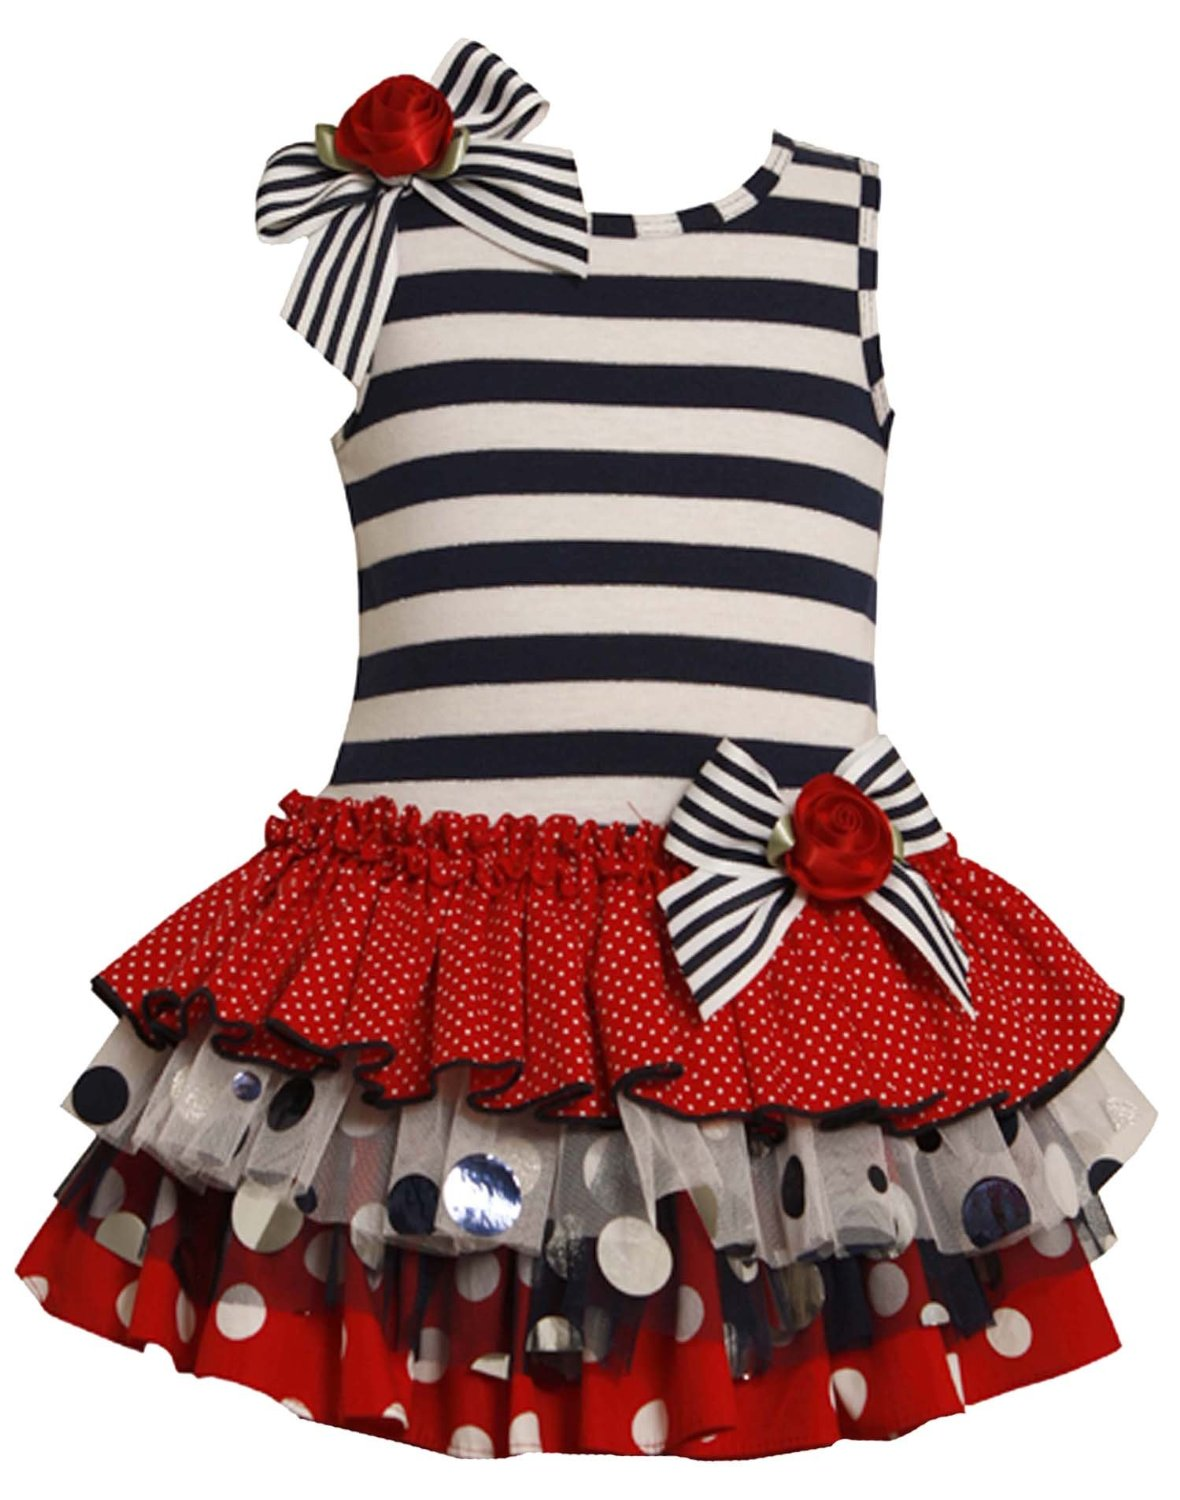 Shop Target for July 4th Baby Clothing you will love at great low prices. Spend $35+ or use your REDcard & get free 2-day shipping on most items or same-day pick-up in store.